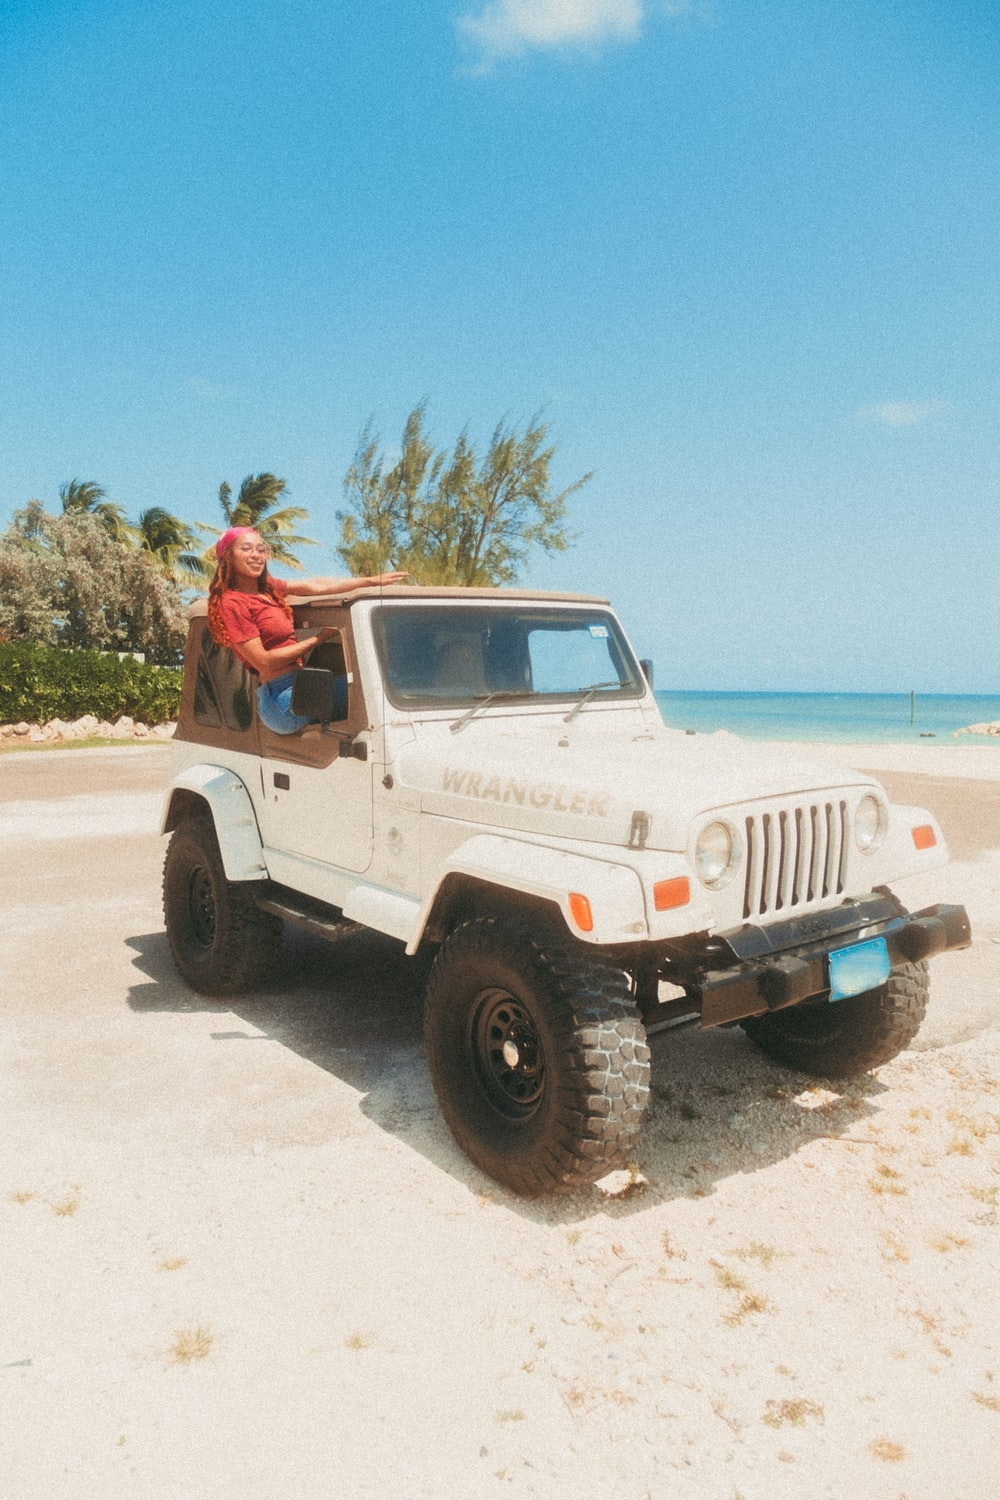 man in brown shirt sitting on white jeep wrangler on beach during daytime